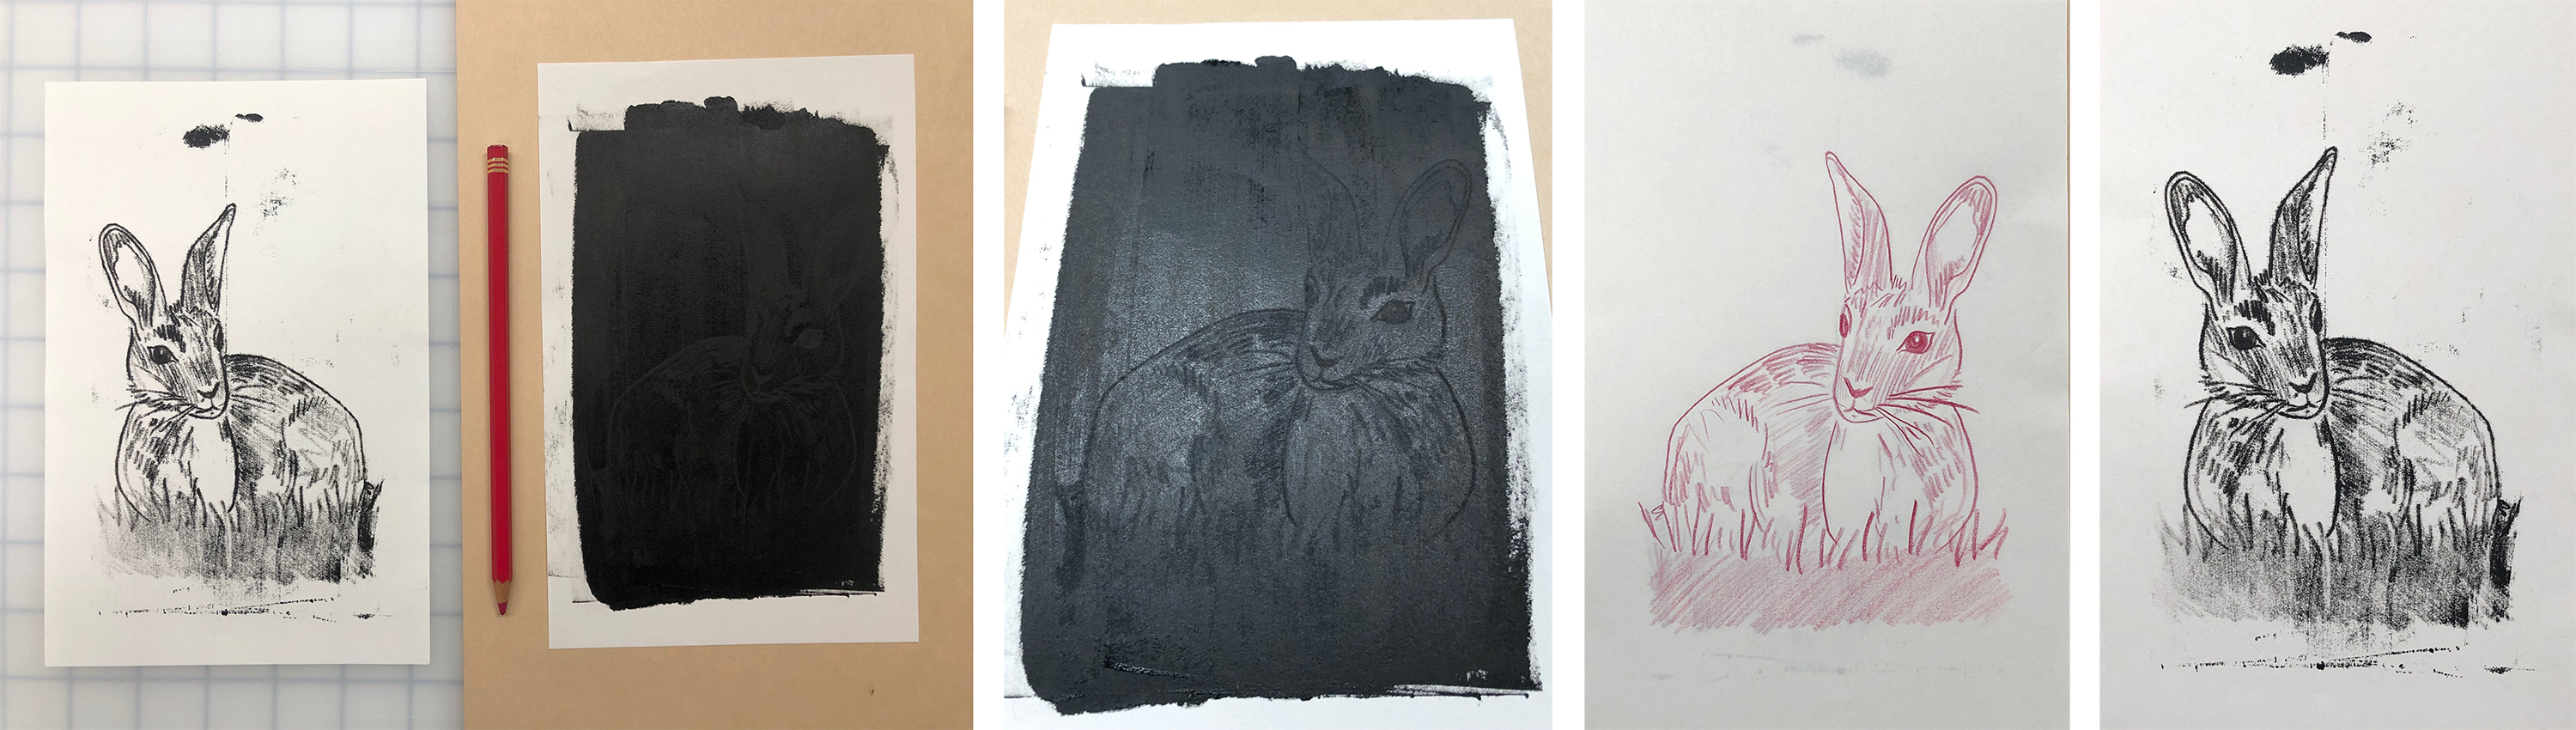 From left: Resulting image with ink on front of clean paper; Ink picked up from tracing; Back (drawing) side of the paper; Front (print) side of the paper